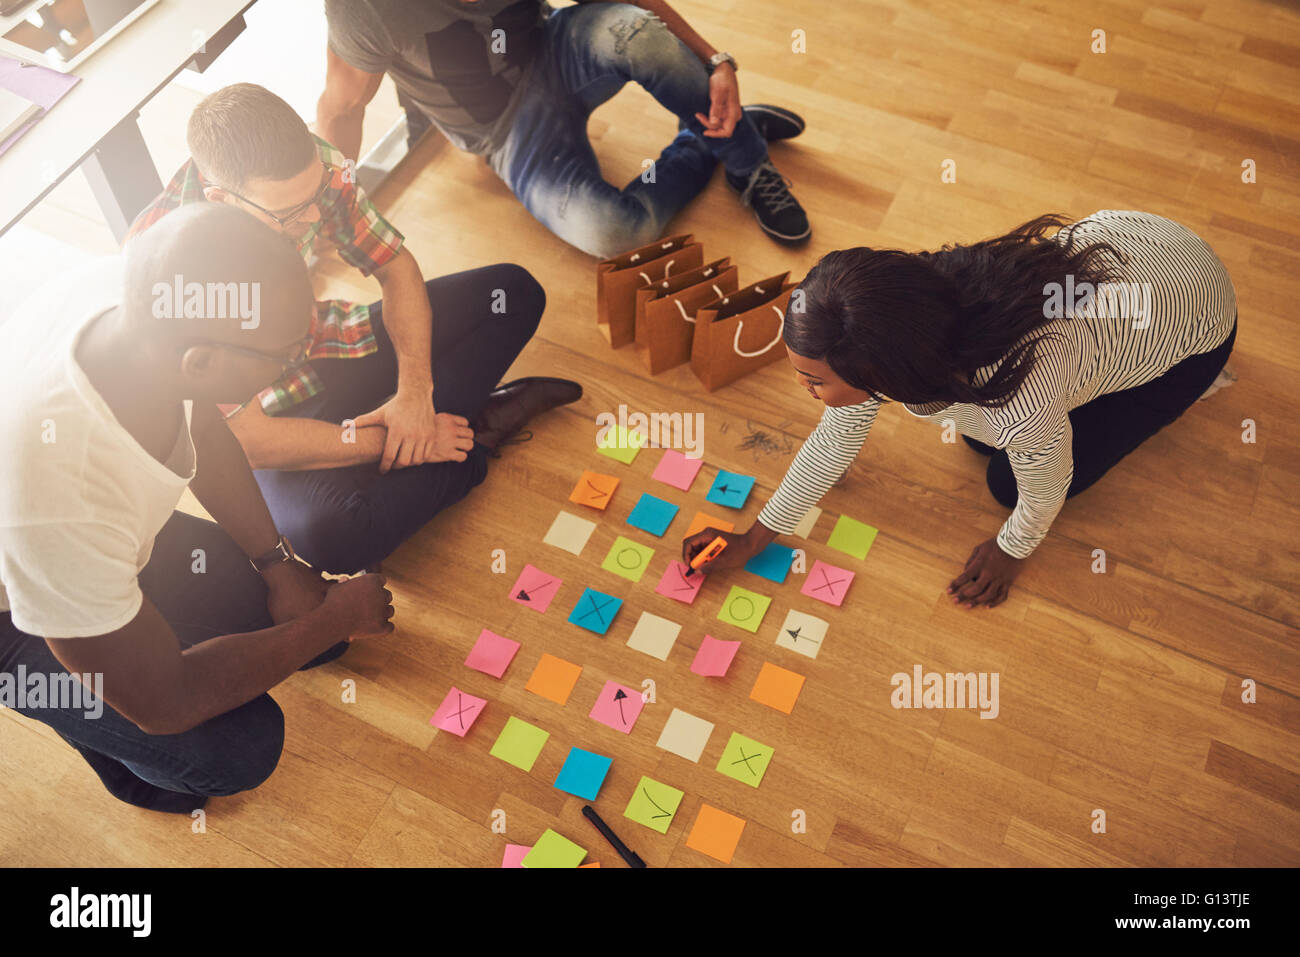 High angle view on female business owner writing on various sticky notes for workers on floor in small office with Stock Photo